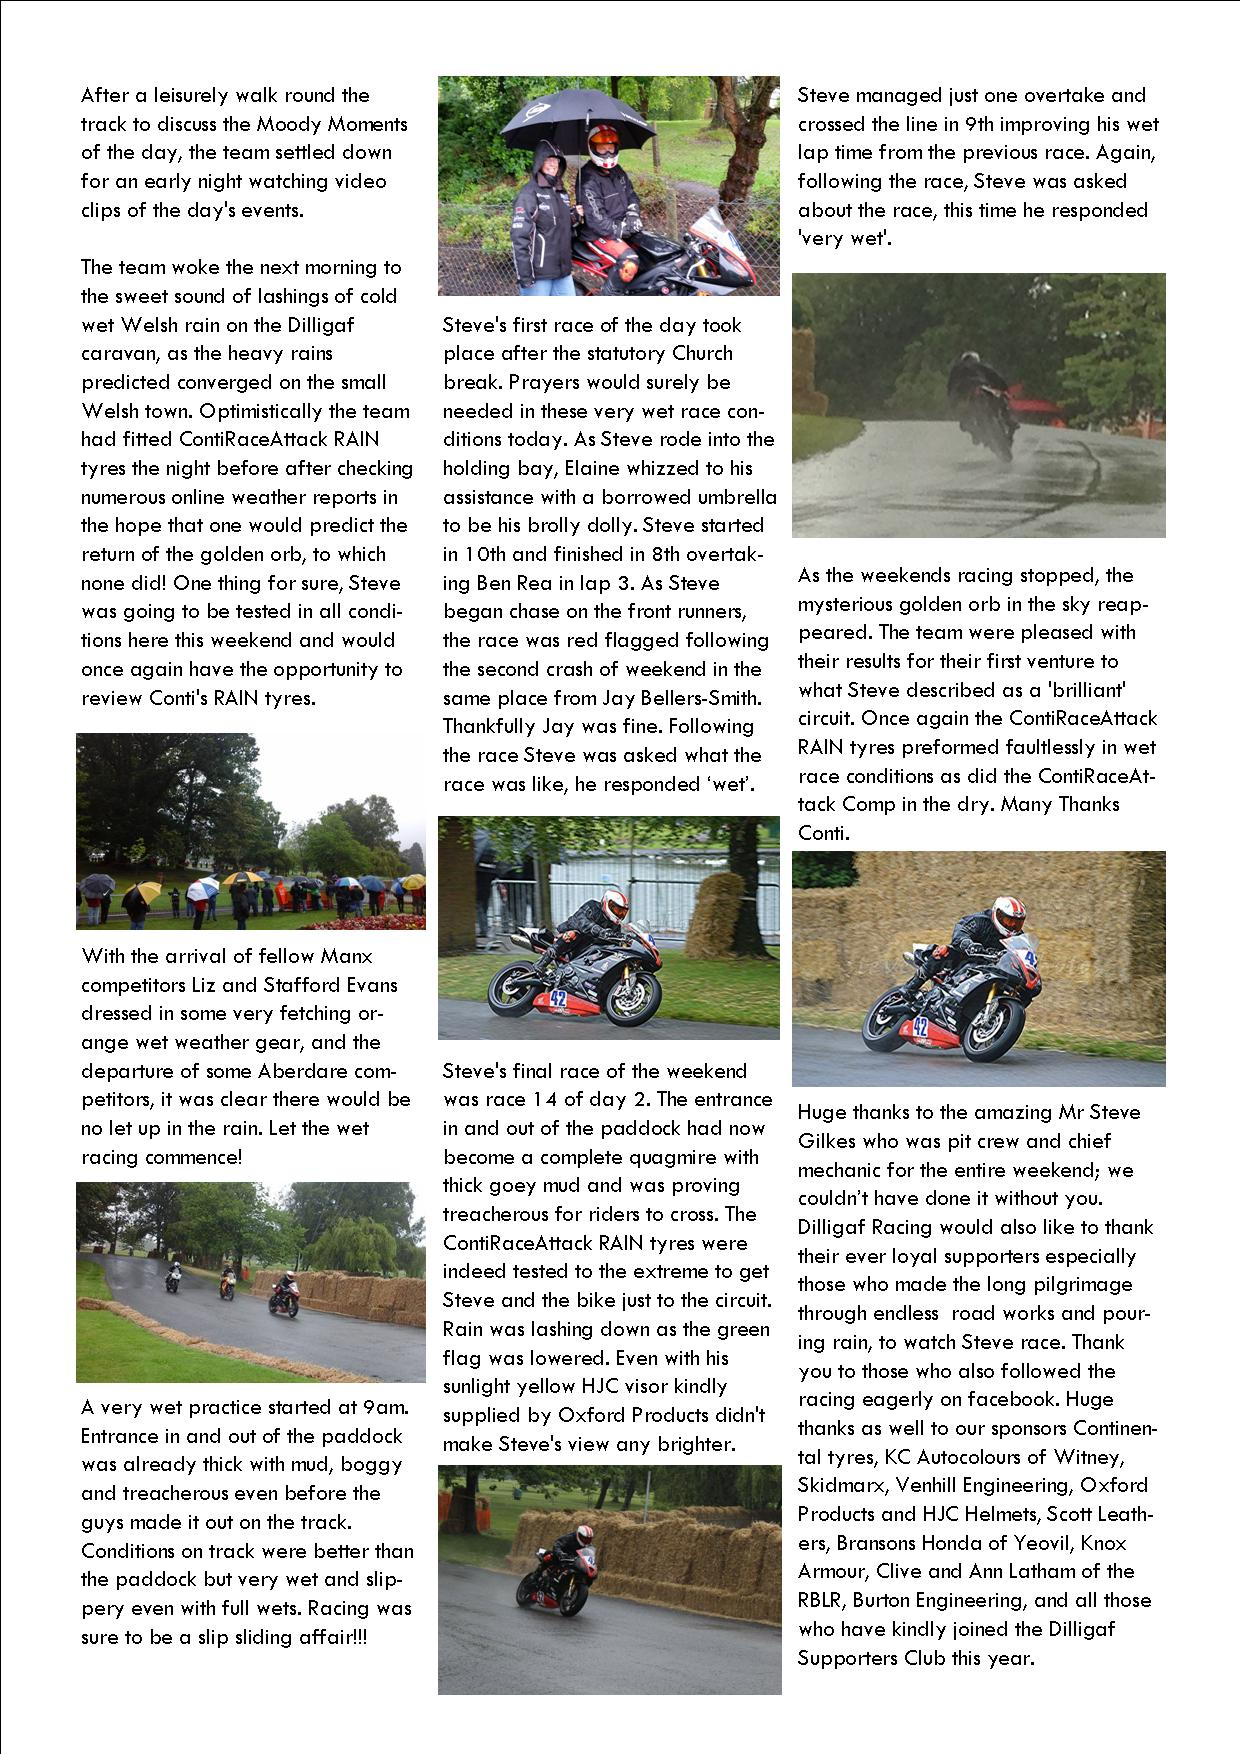 dilligaf racing news vol 13 Aberdare National park p3